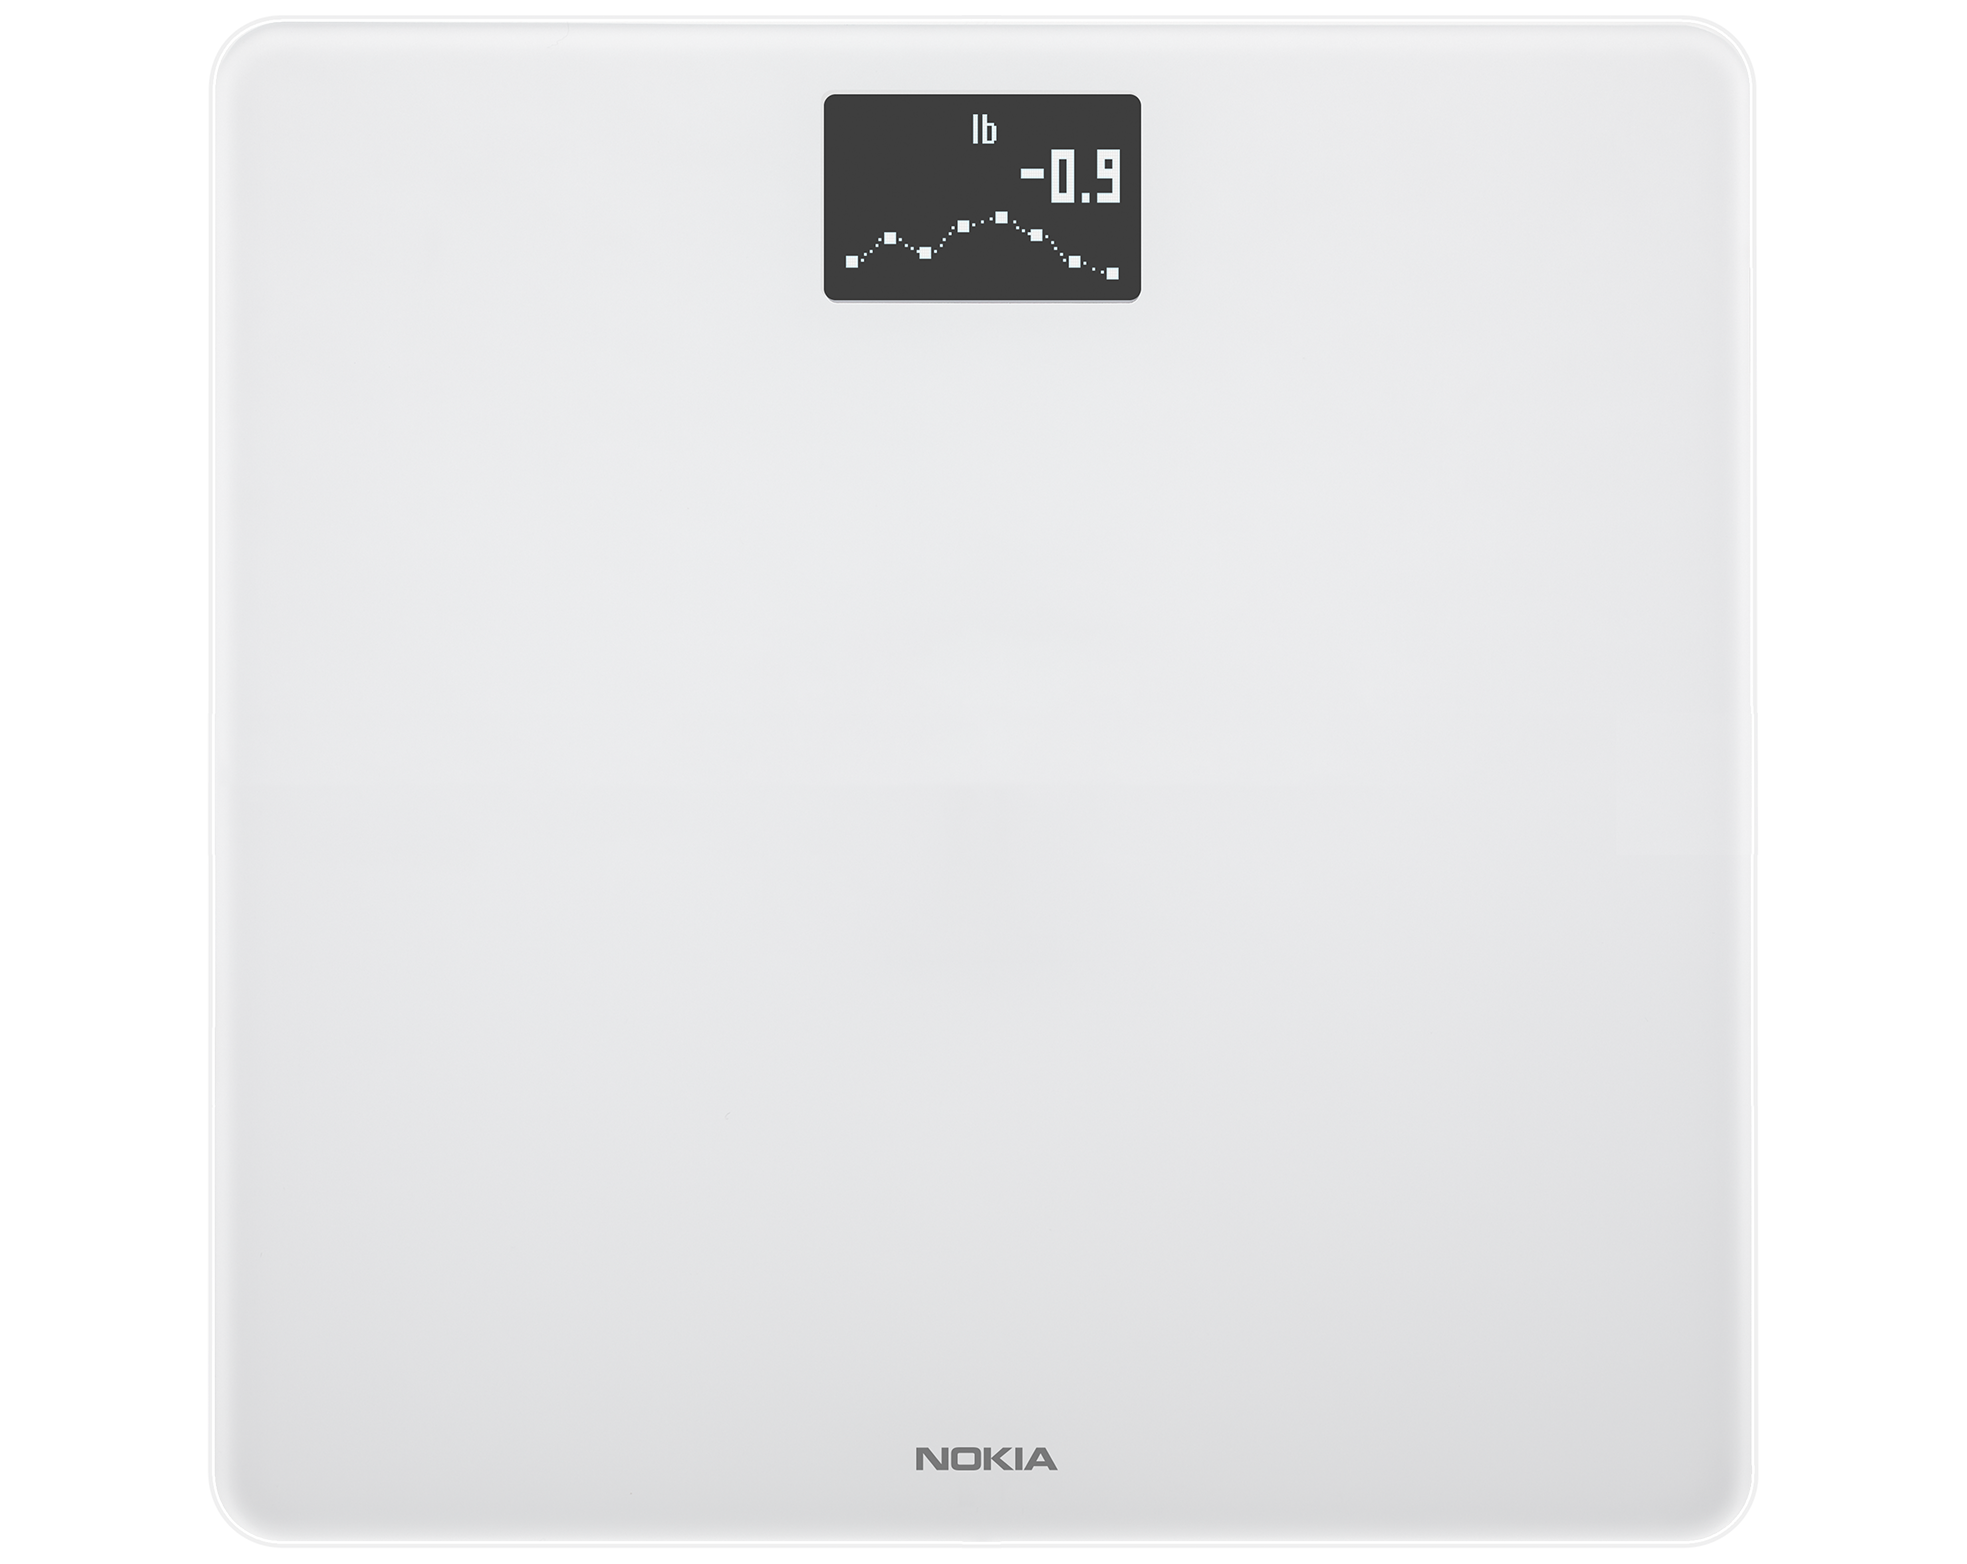 Nokia releases two new fitness devices, as Withings absorption is finalized